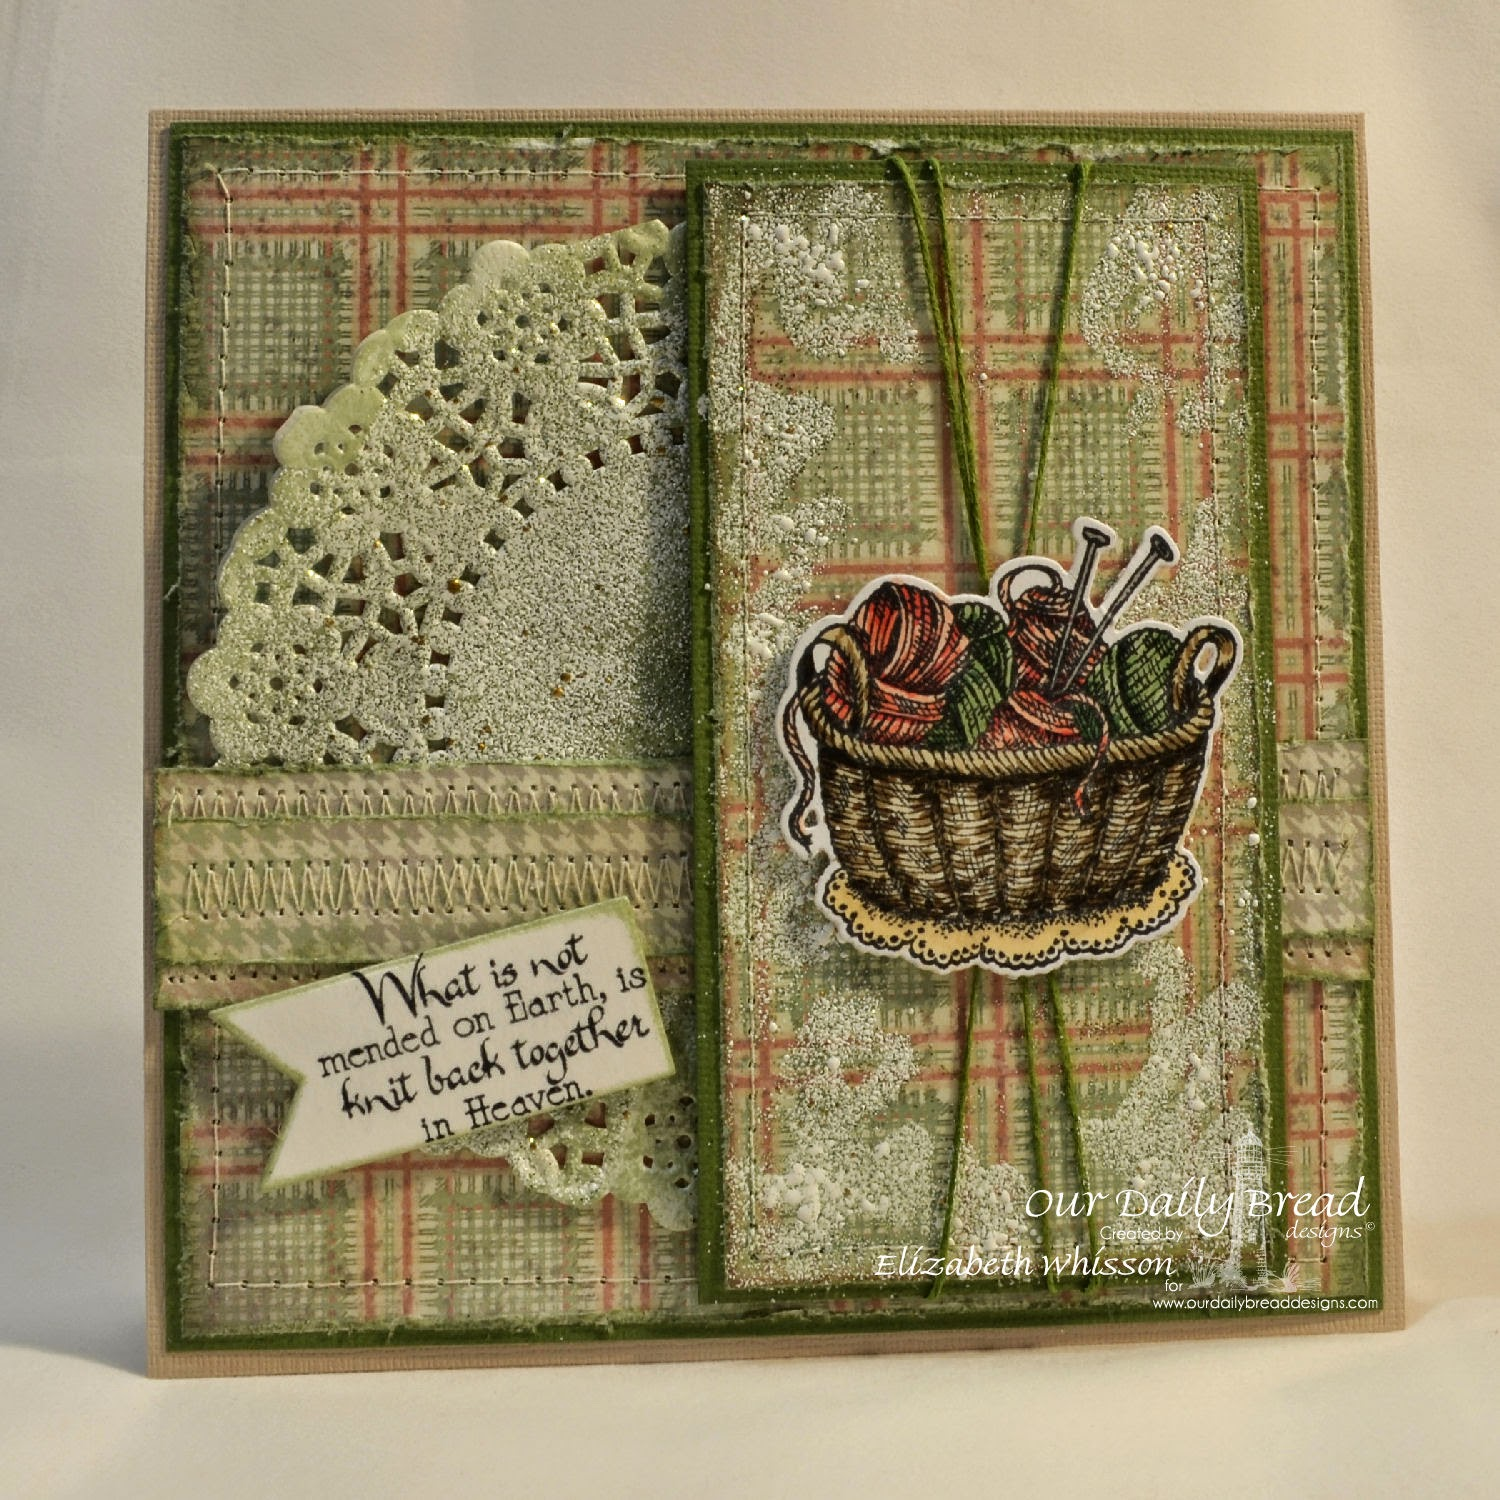 Elizabeth Whisson, Our Daily Bread Designs, ODBD, ODBDDT, ODBDSLC, Hand knit, handmade card, Knitting basket and yarn dies, pennant, soulful stitches, doily, copics